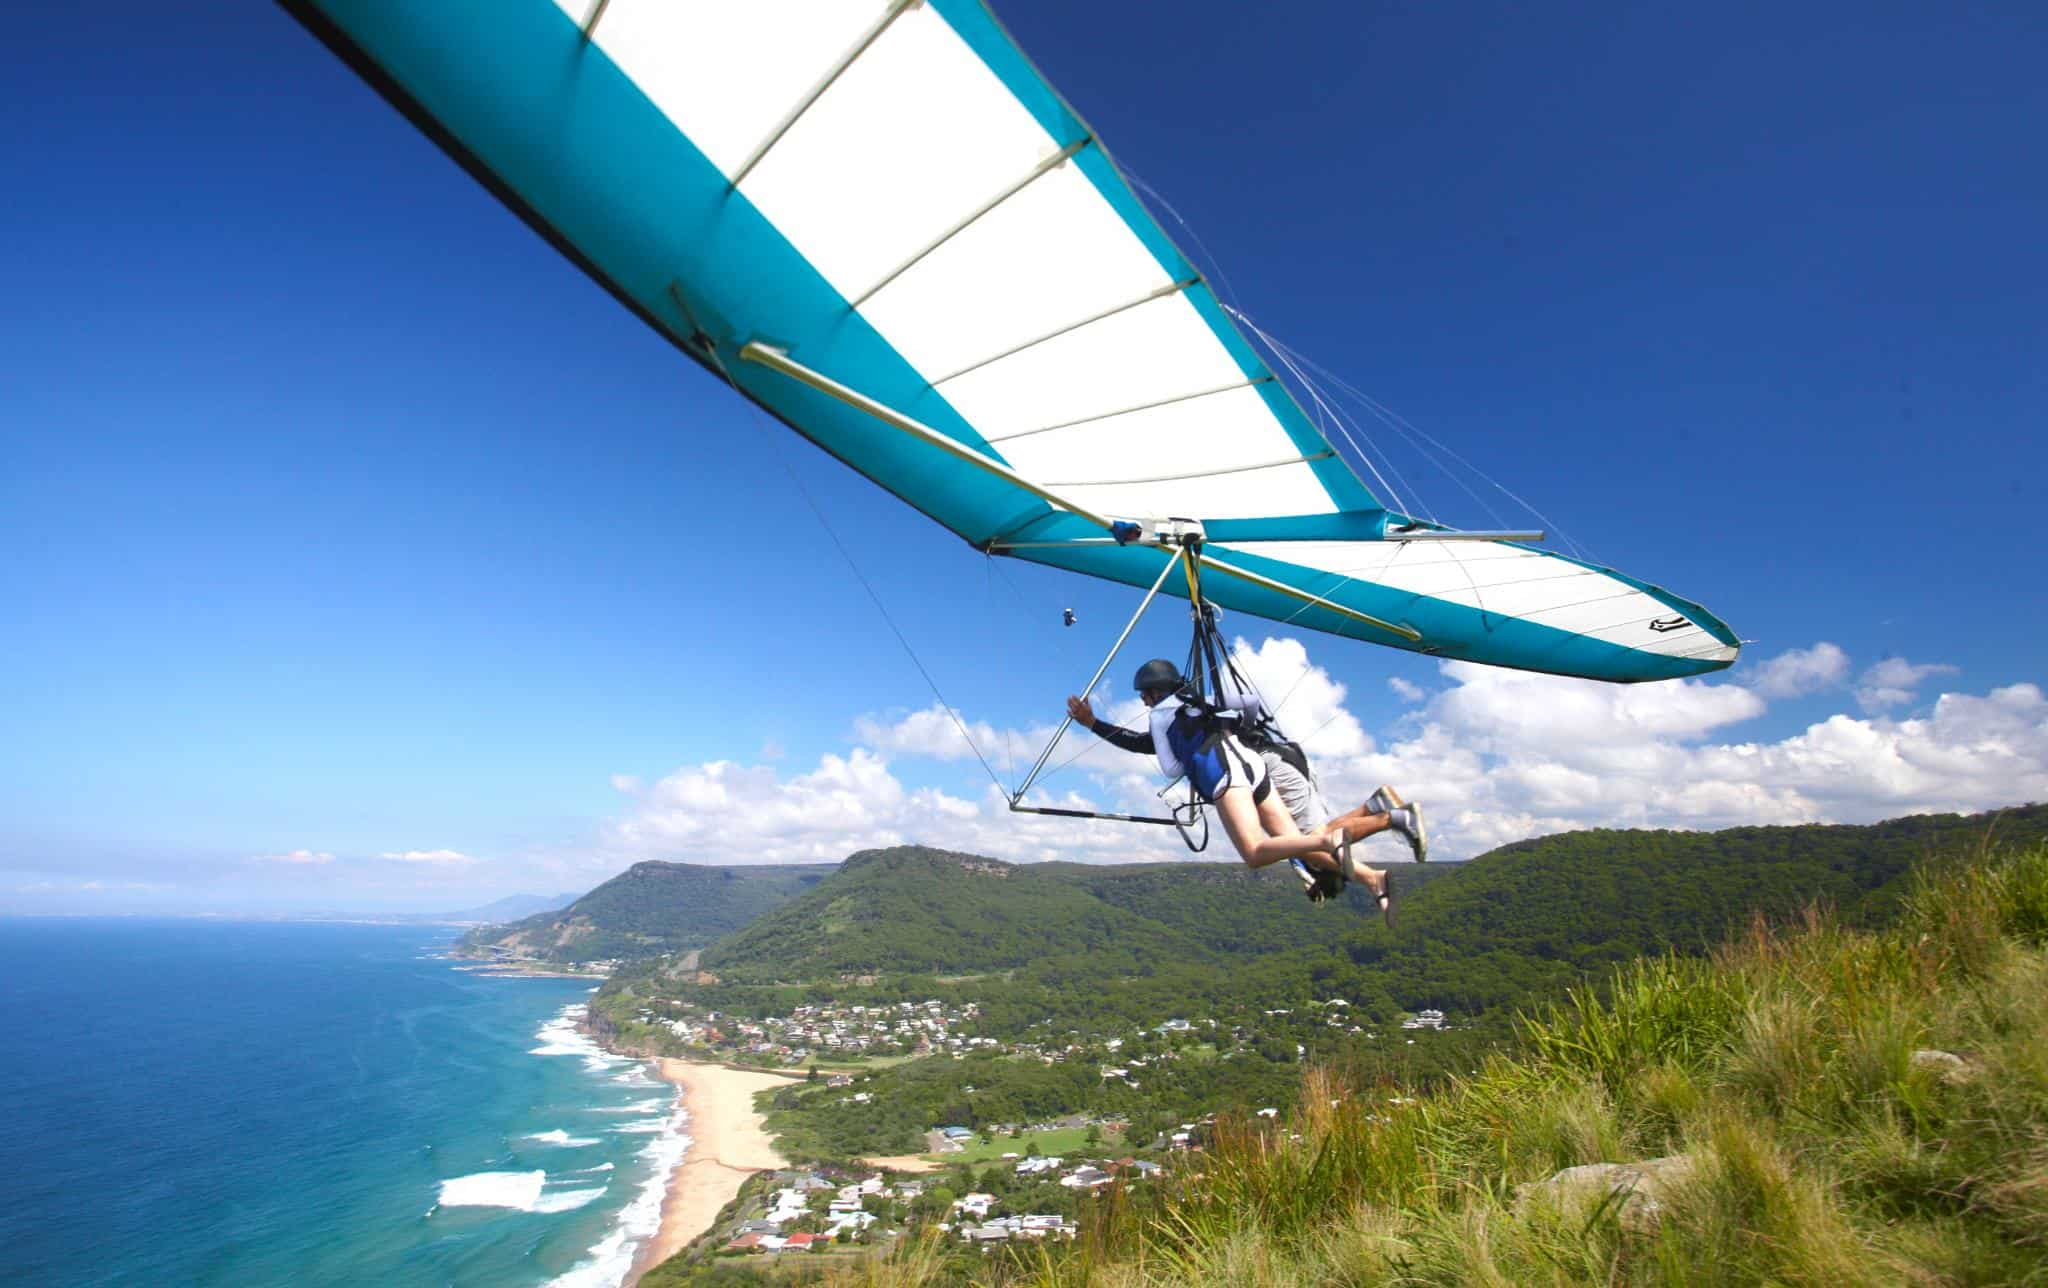 It's All about Hang Gliding